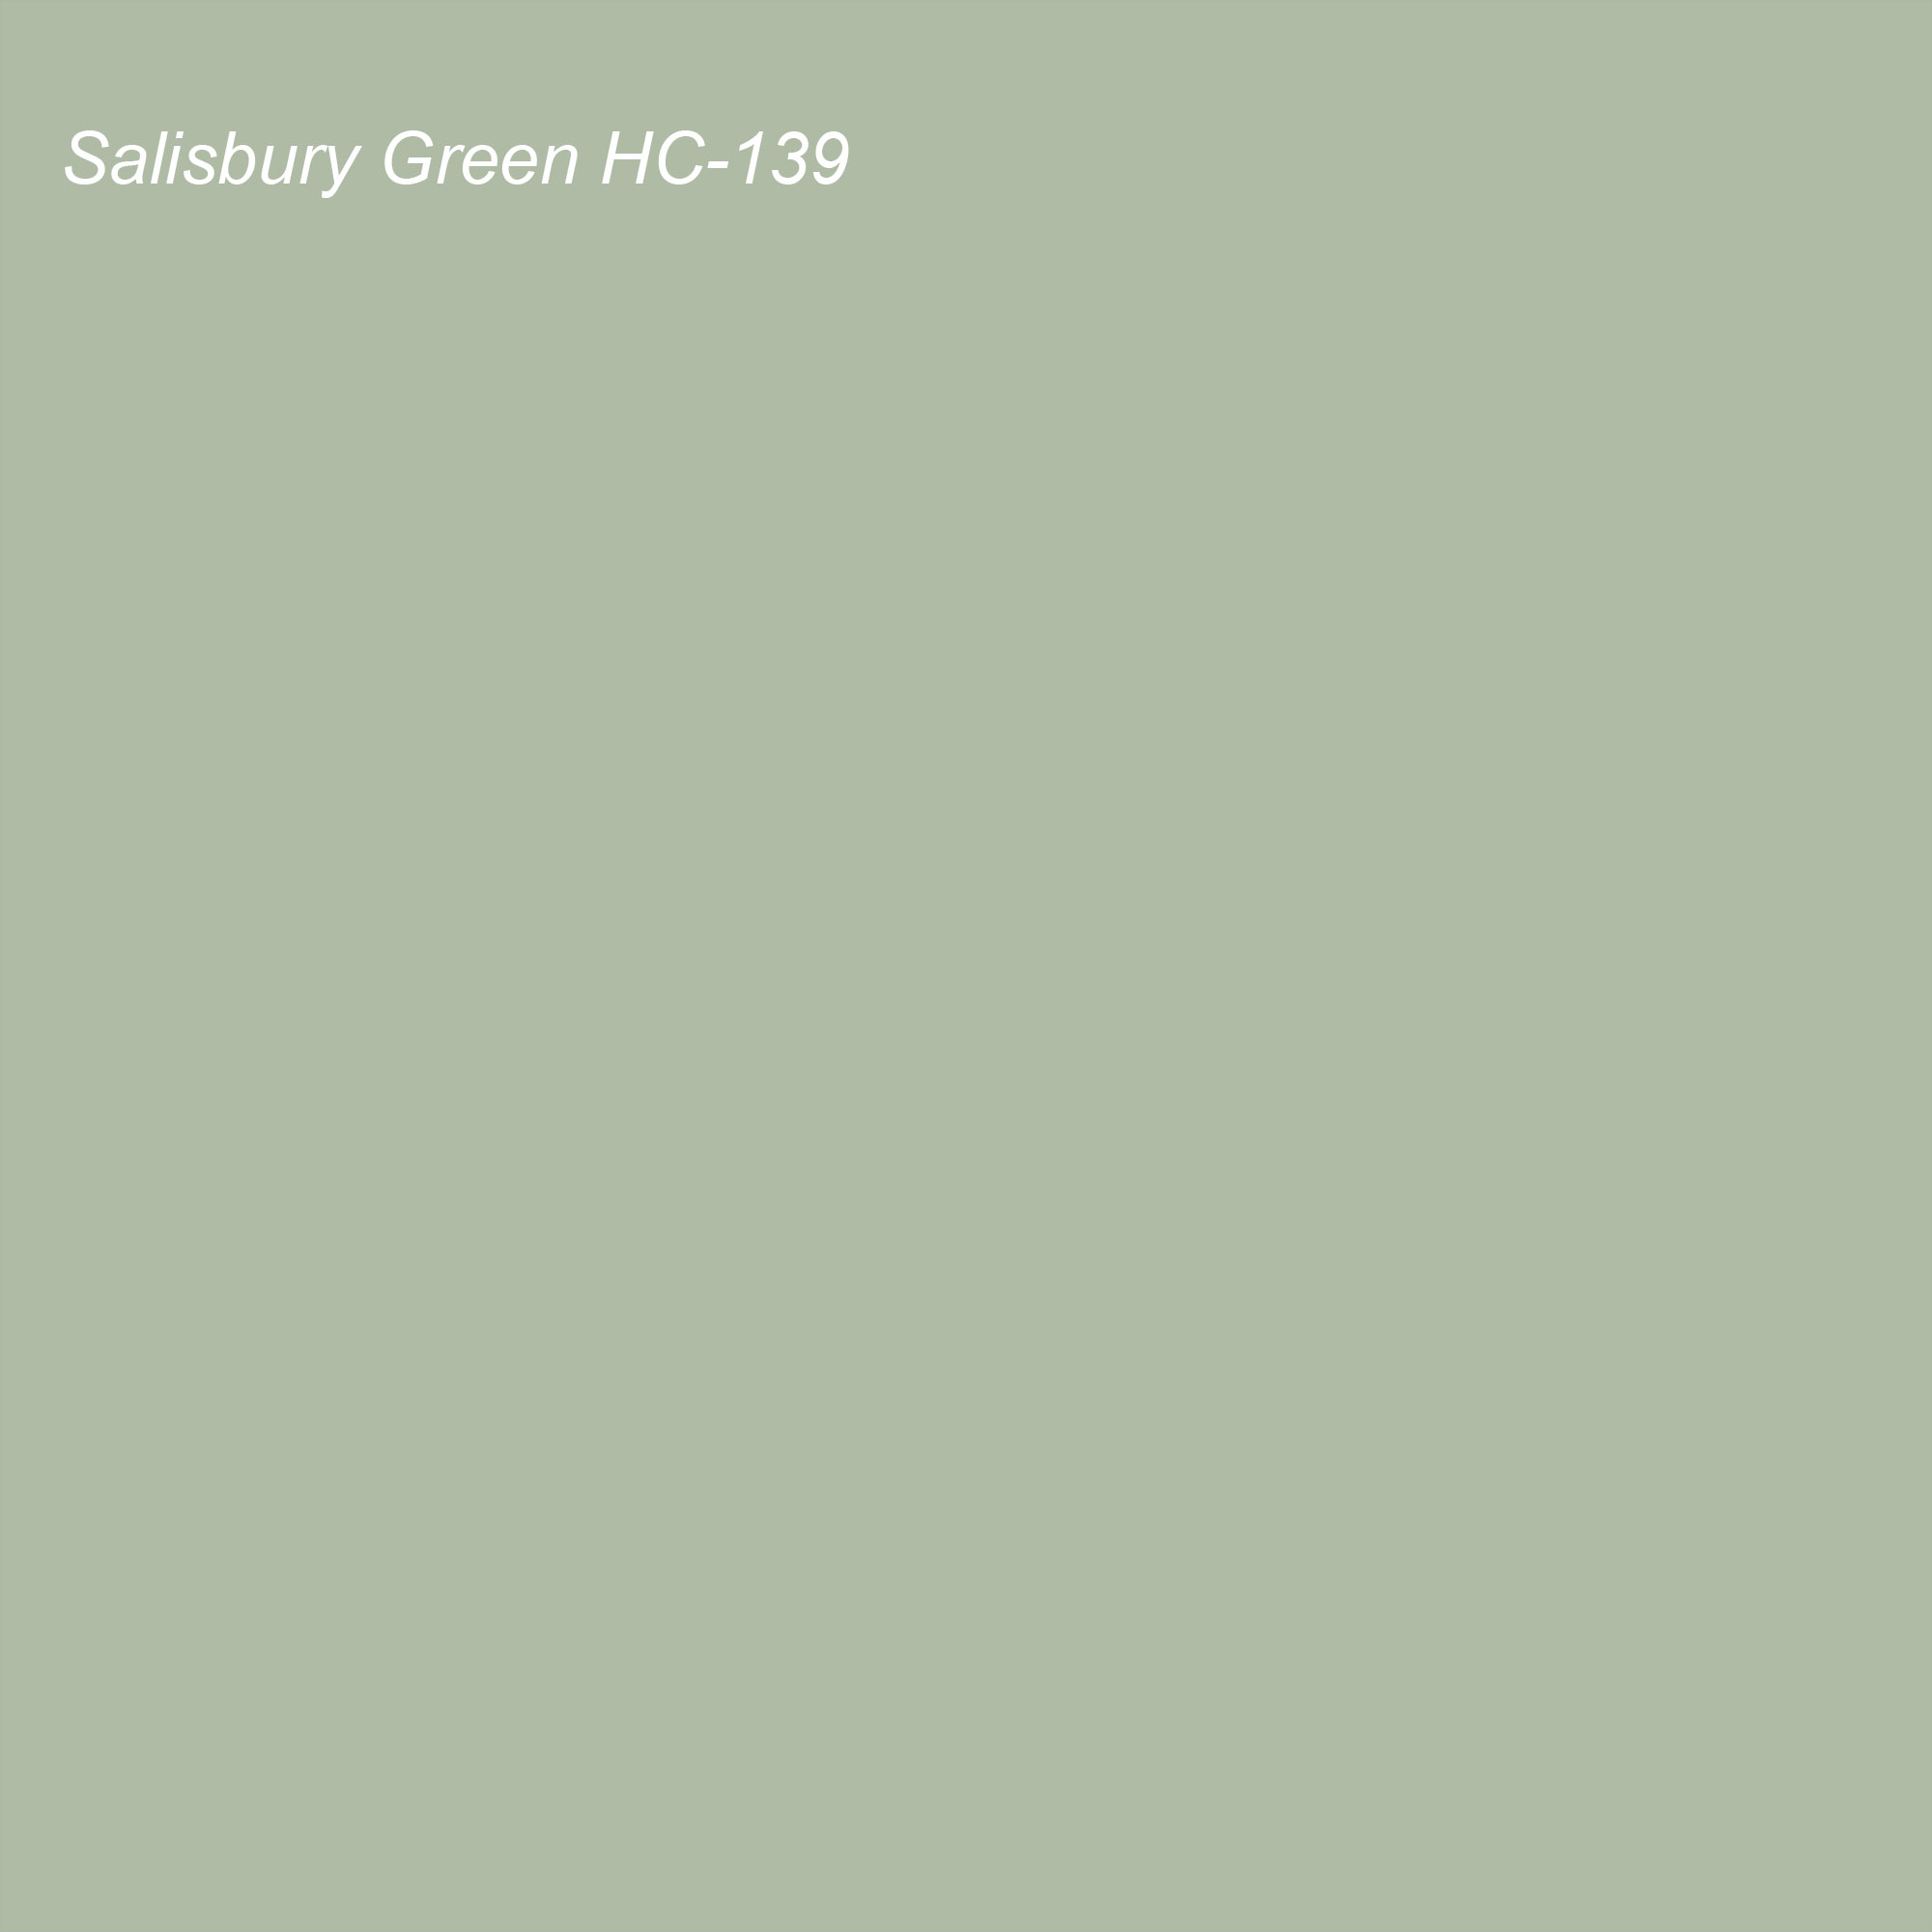 Benjamin Moore 2021 Color of the Year Suggested Accent Shade Salisbury Green HC-139